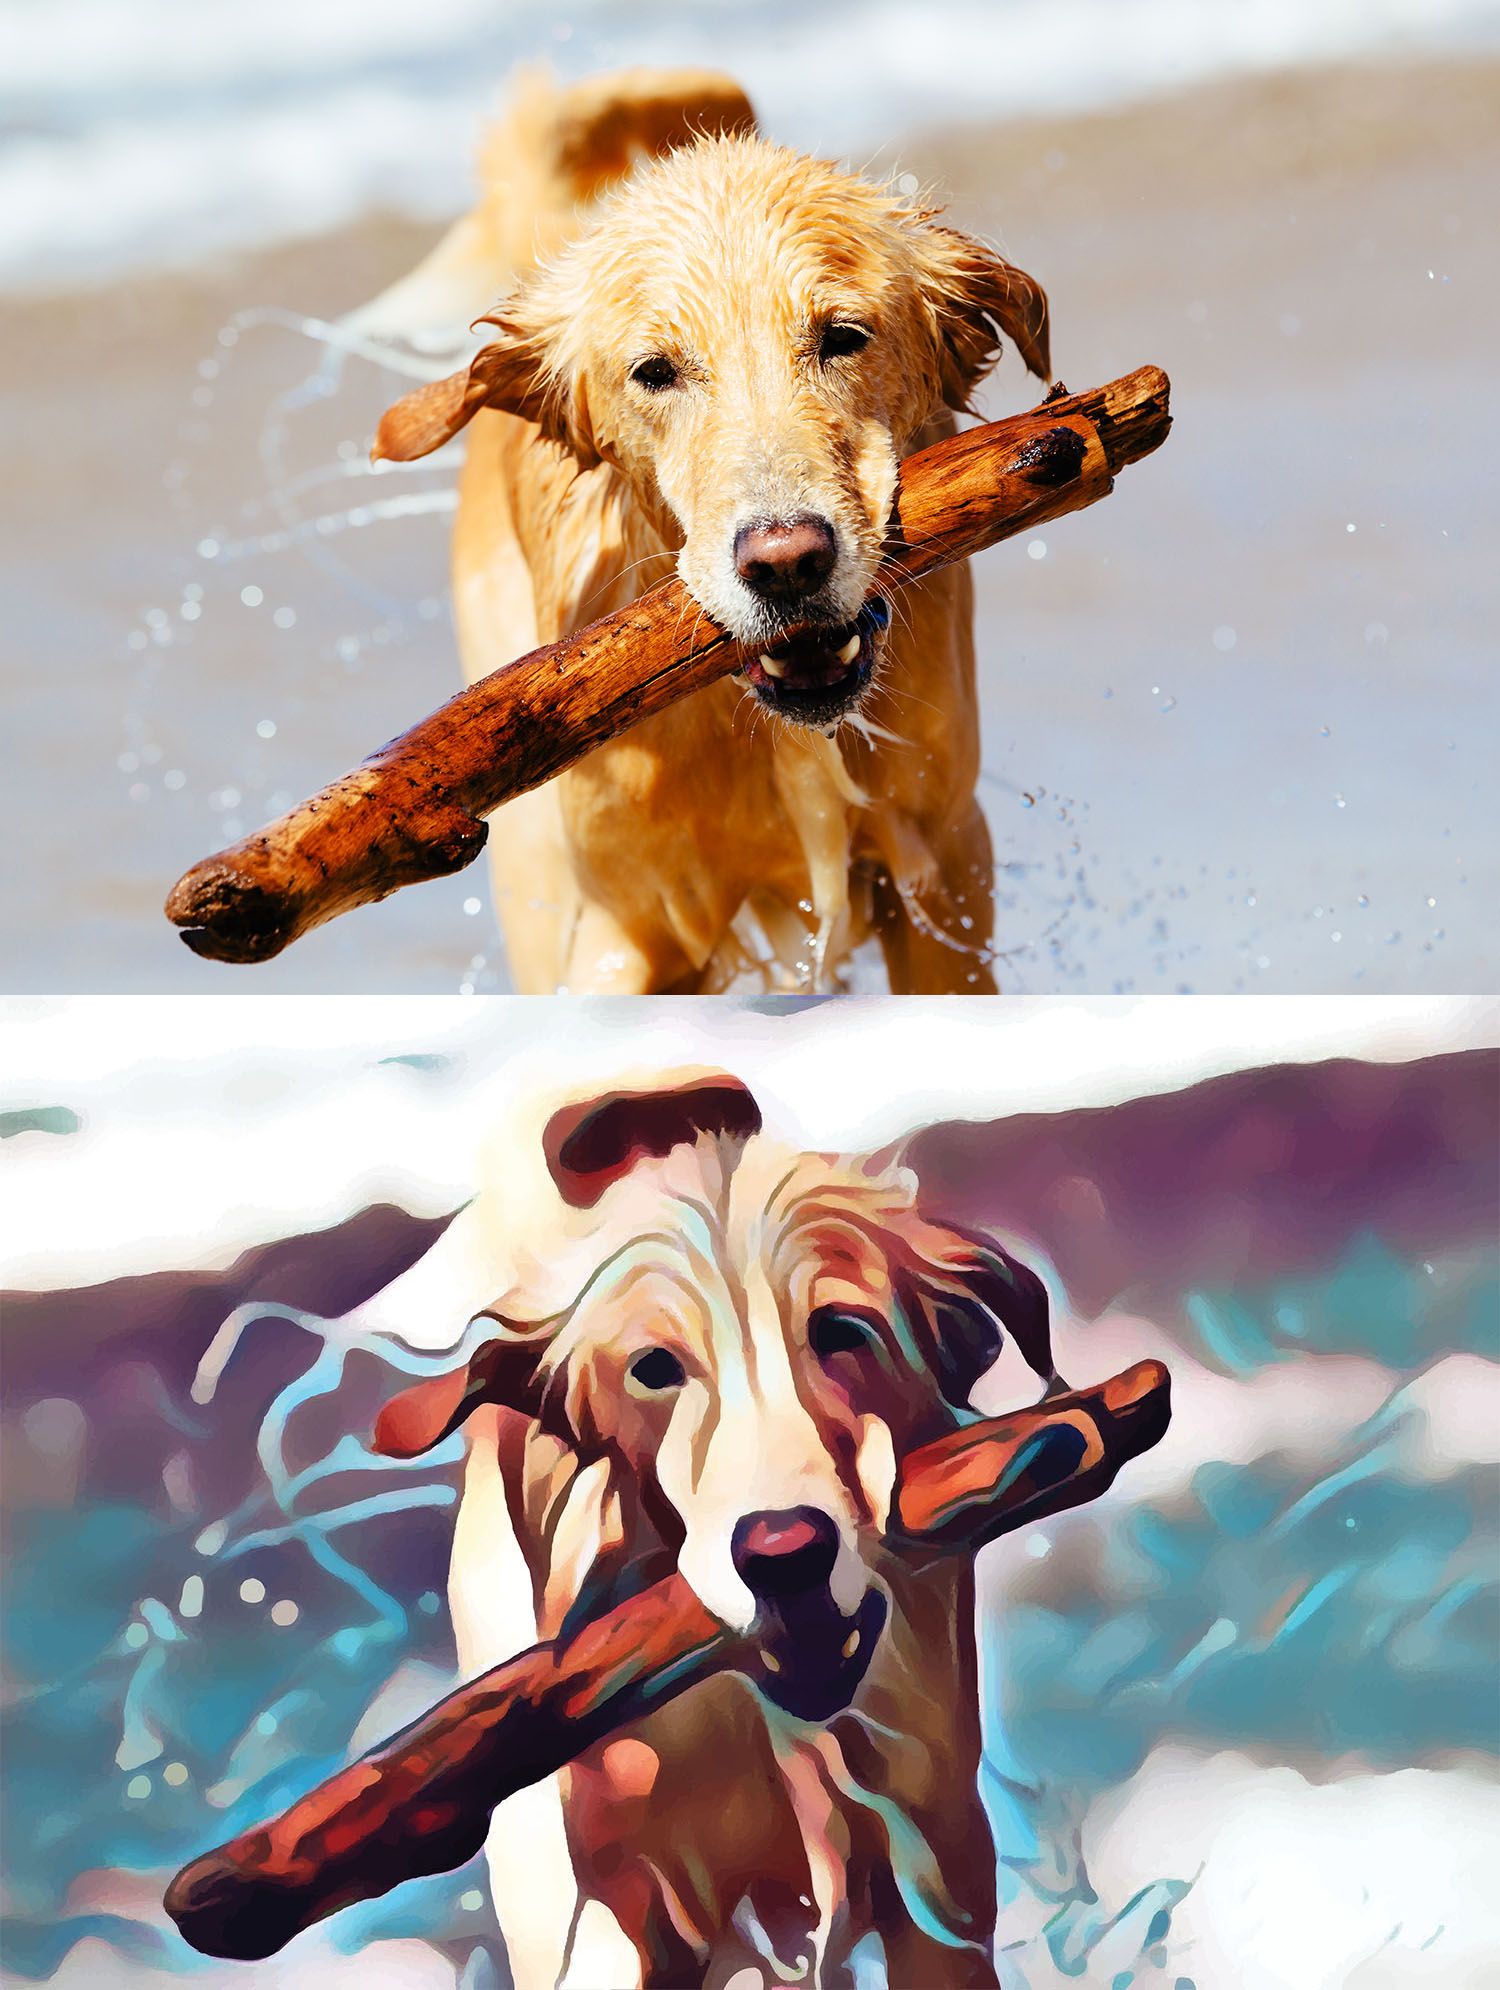 Before and after stylized image of a dog on the beach with a big stick in its mouth